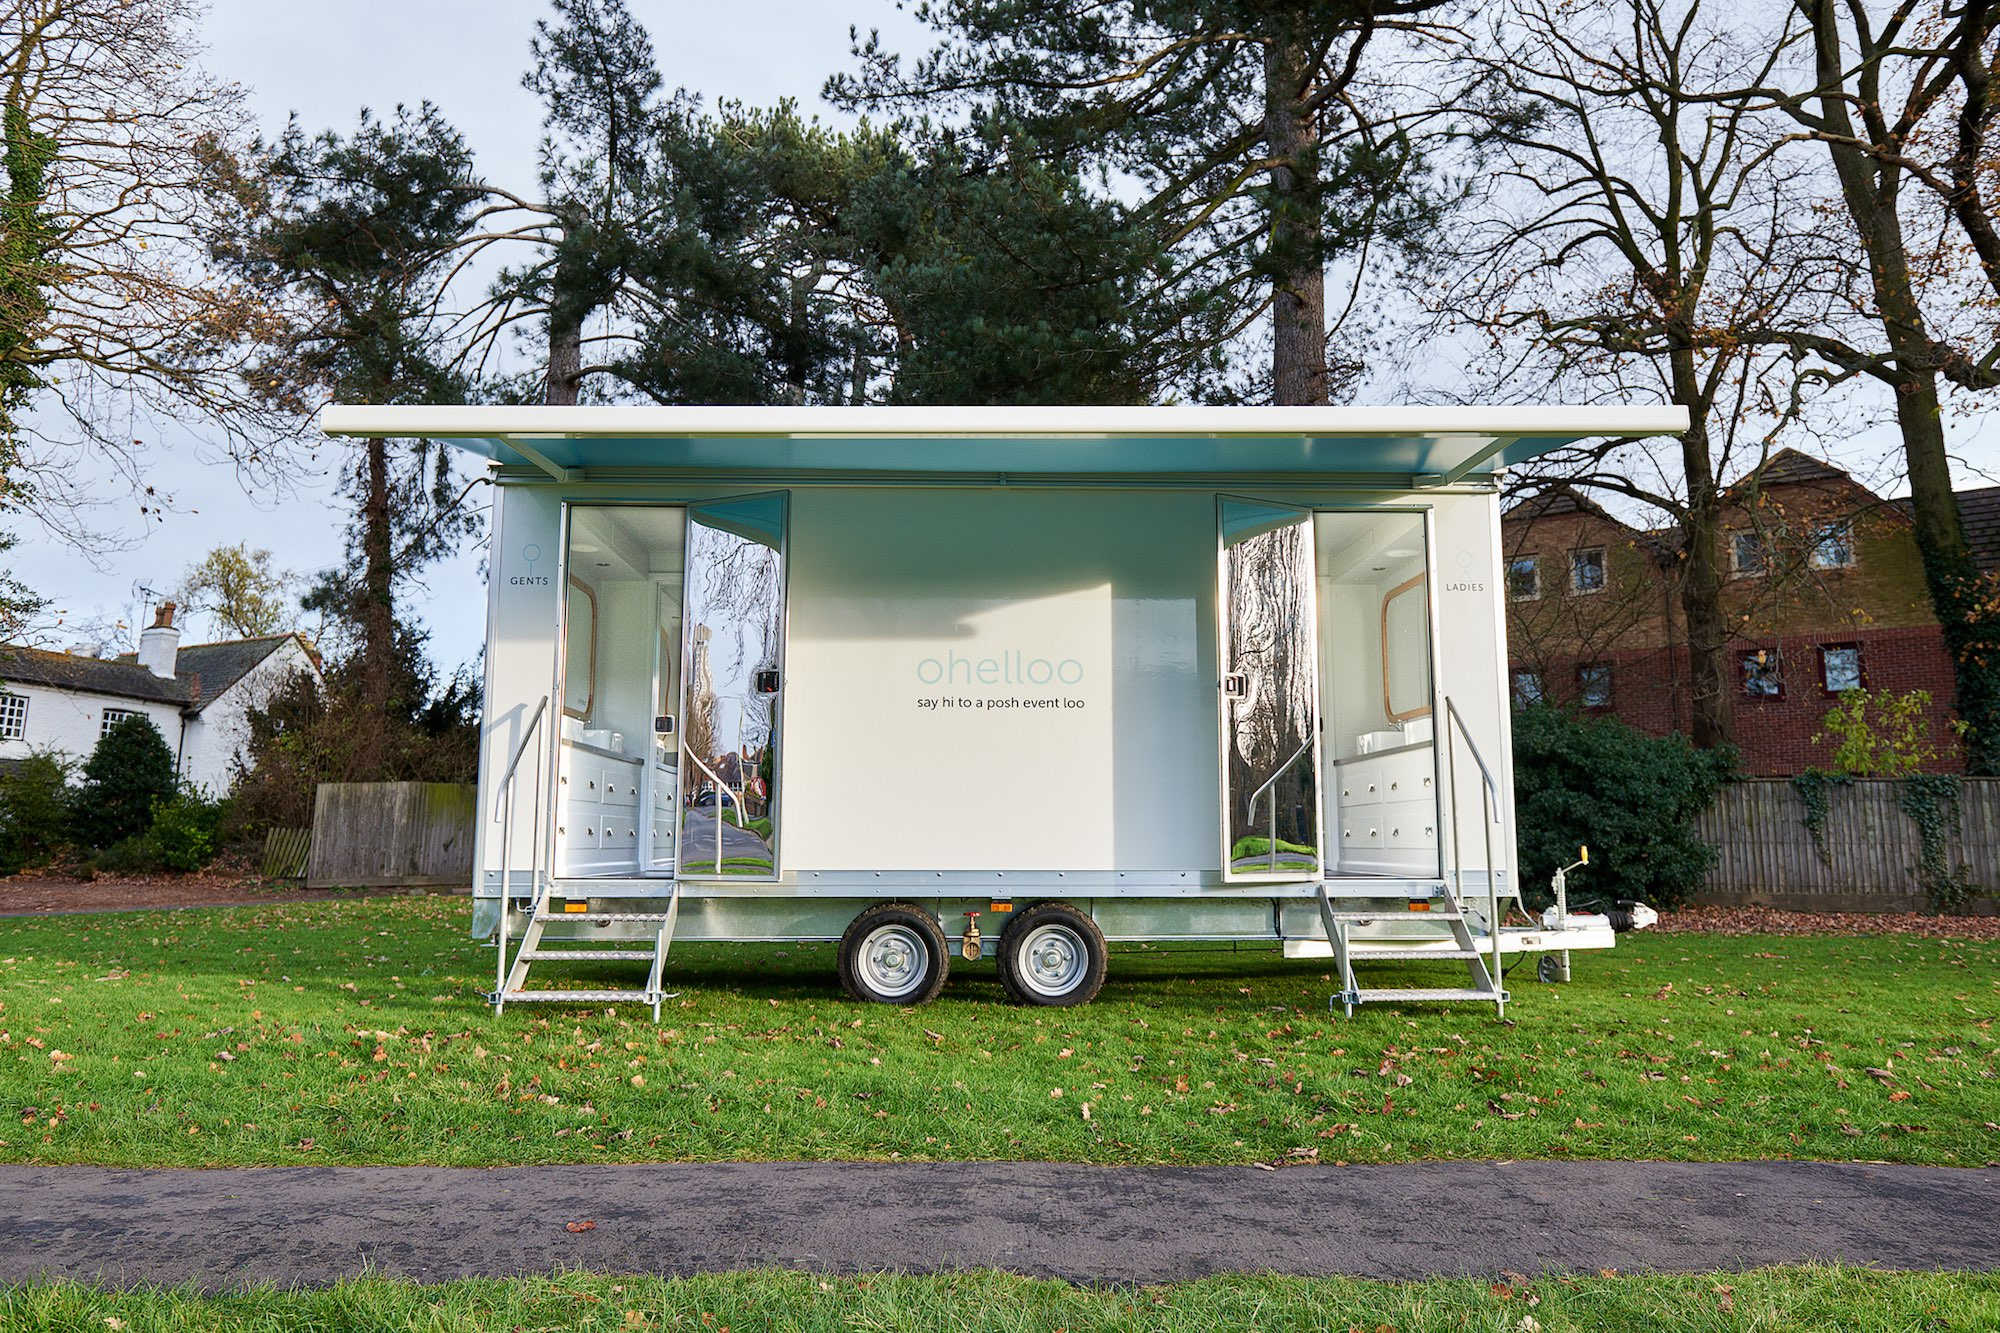 Luxury Portable Toilets: Spending a Posher Penny